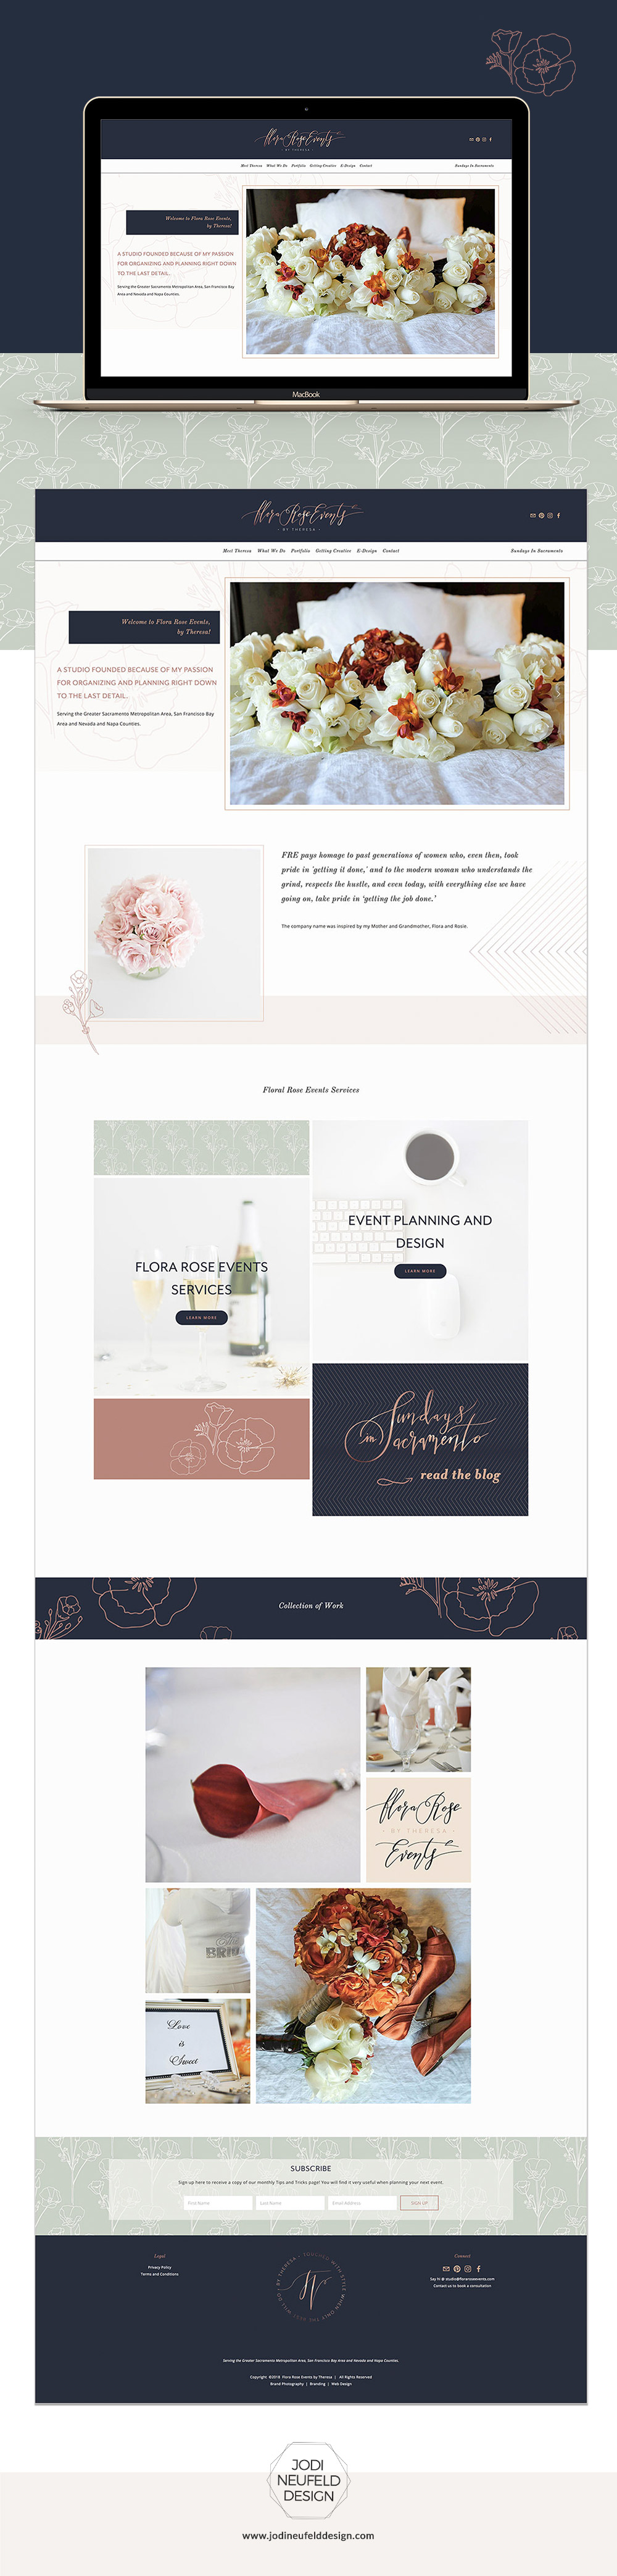 Flora Rose Events Home page | Event planning Squarespace website | web design by Jodi Neufeld Design | Squarespace Designer